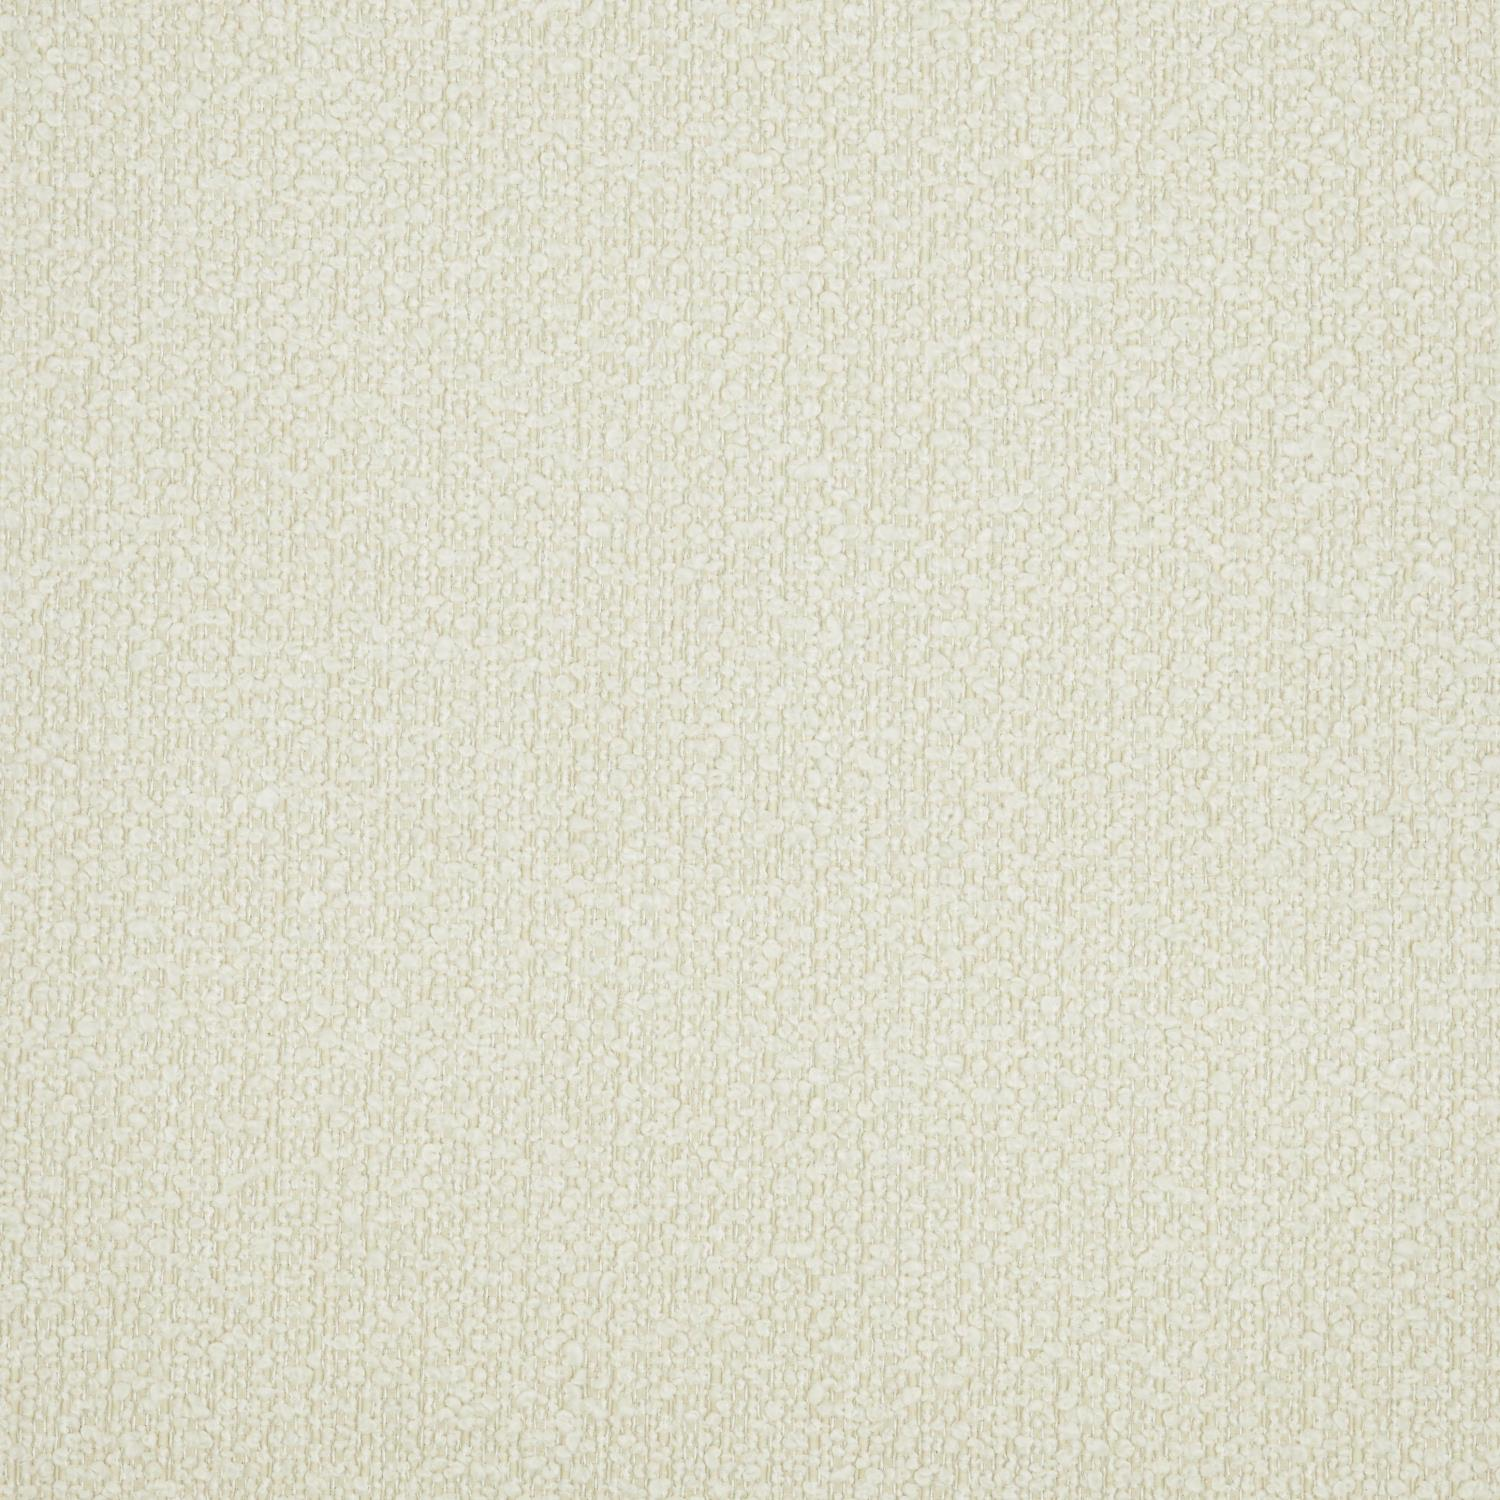 Boucle moment - Offwhite